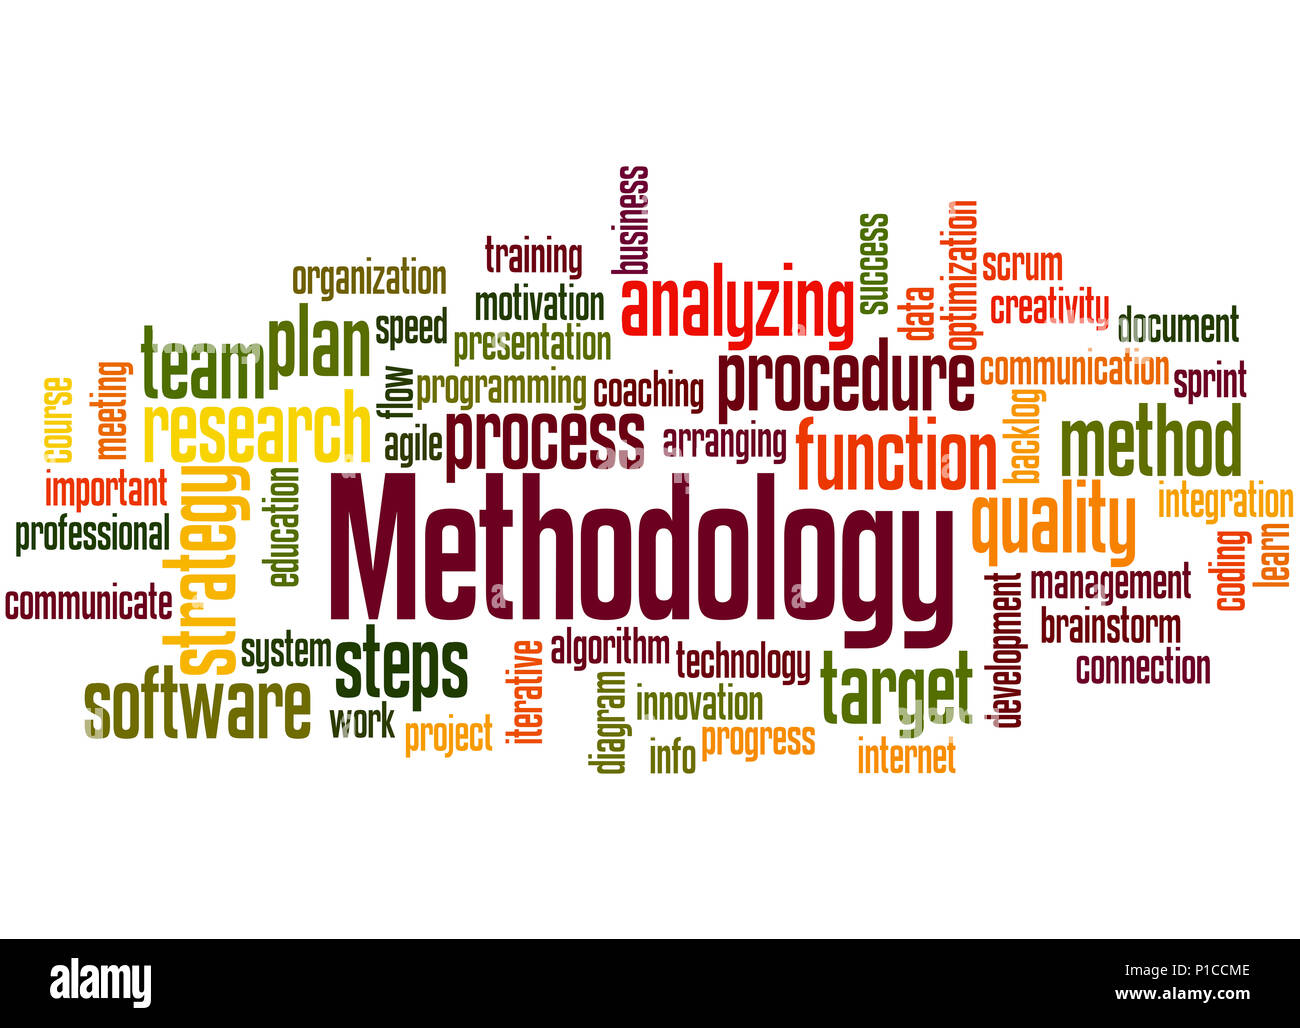 Methodology, word cloud concept on white background. - Stock Image